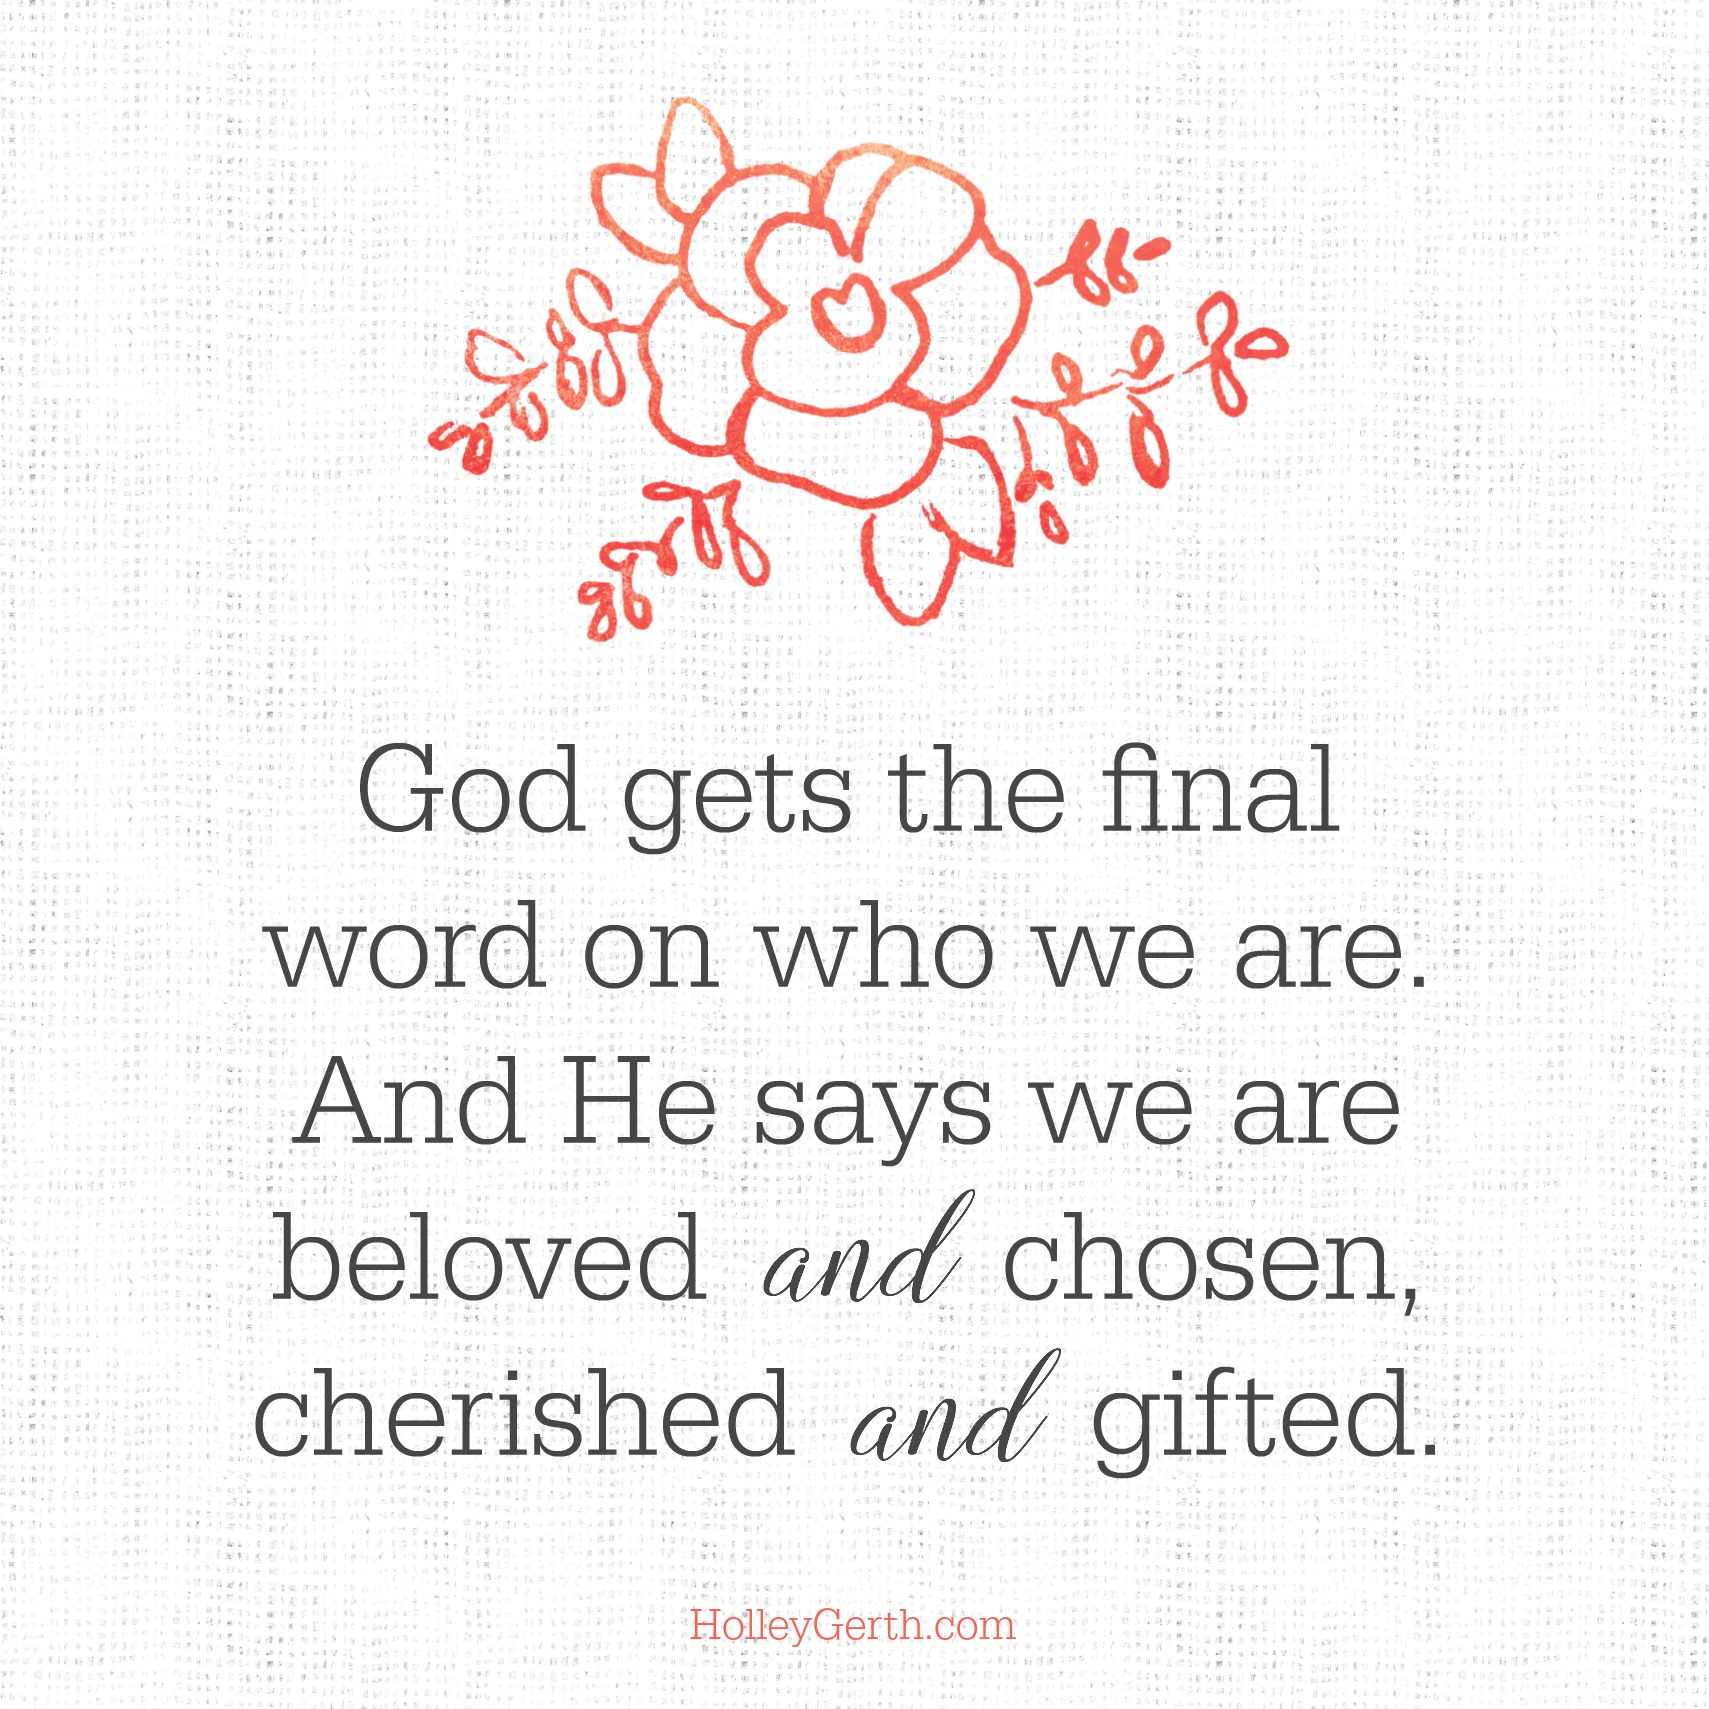 God gets the final word on who we are. And He says we are beloved and chosen, cherished and gifted.